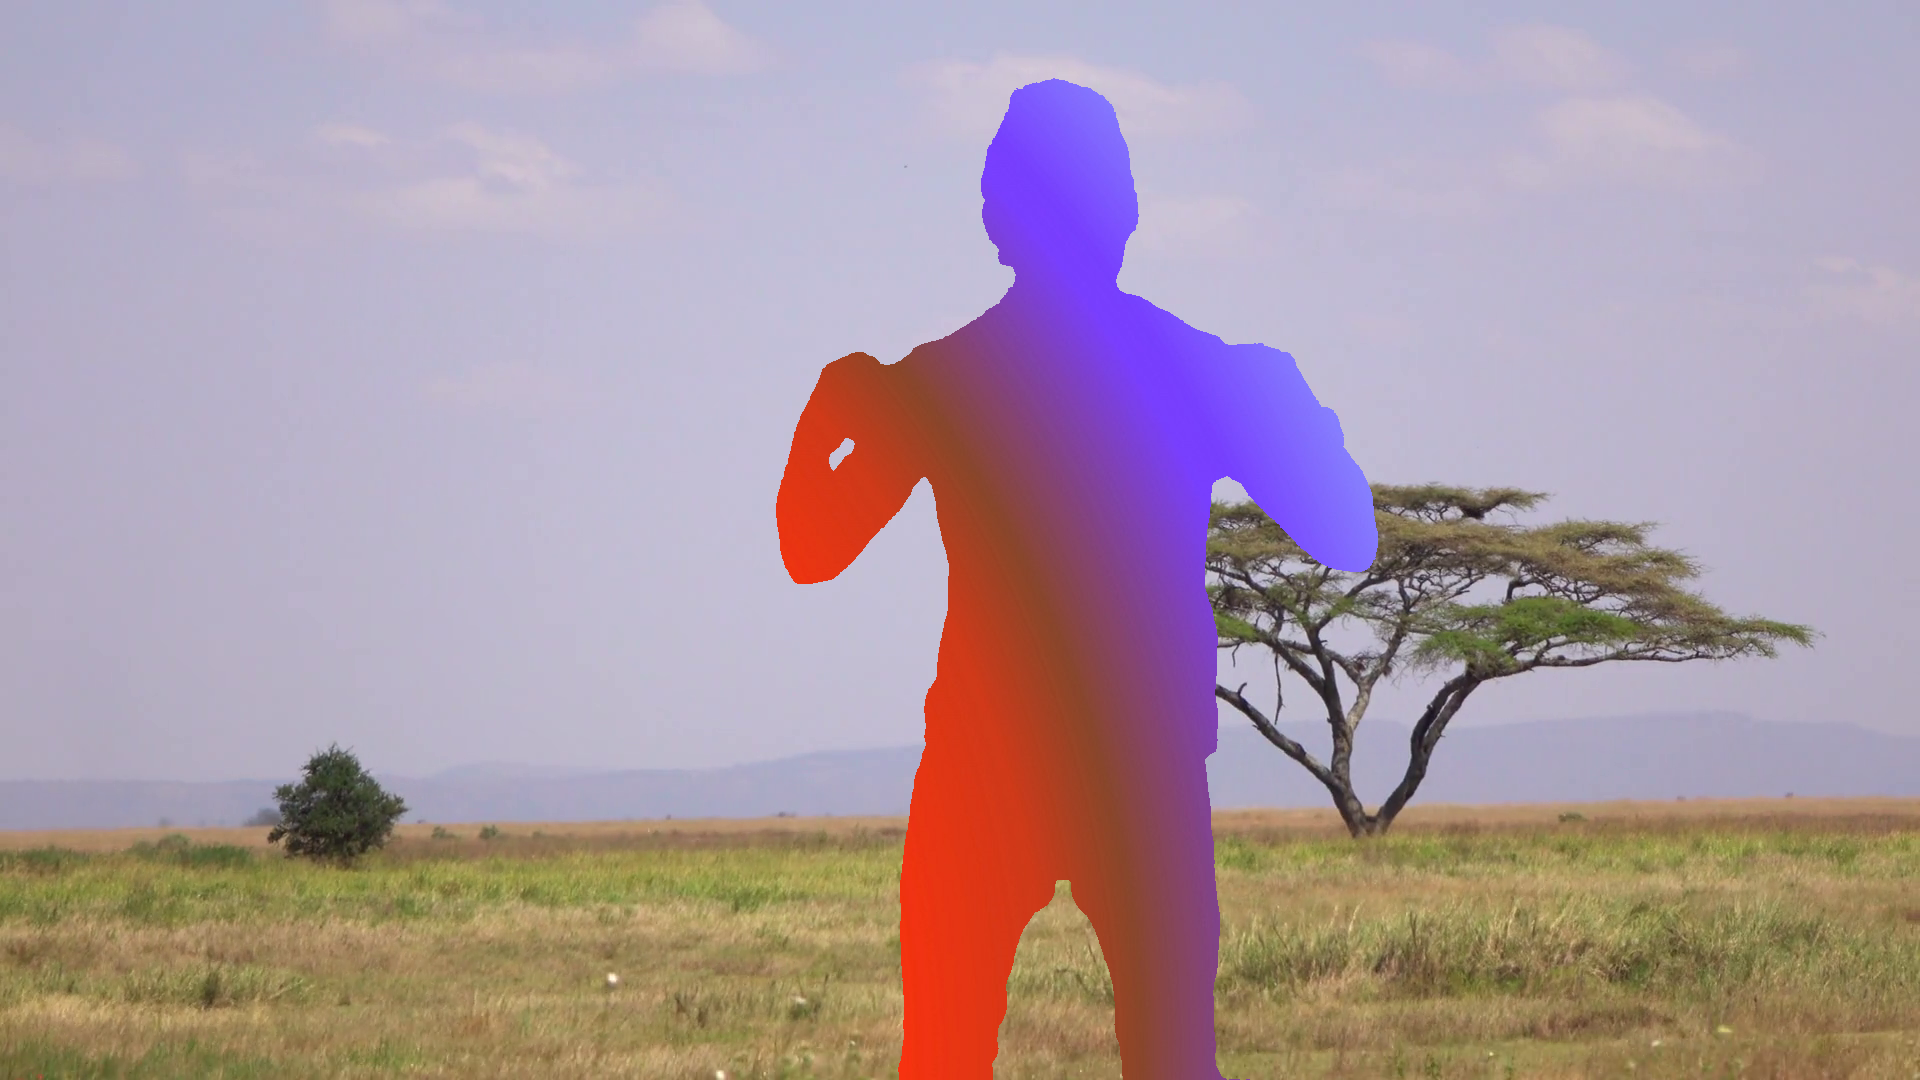 Image with Chromakey Applied